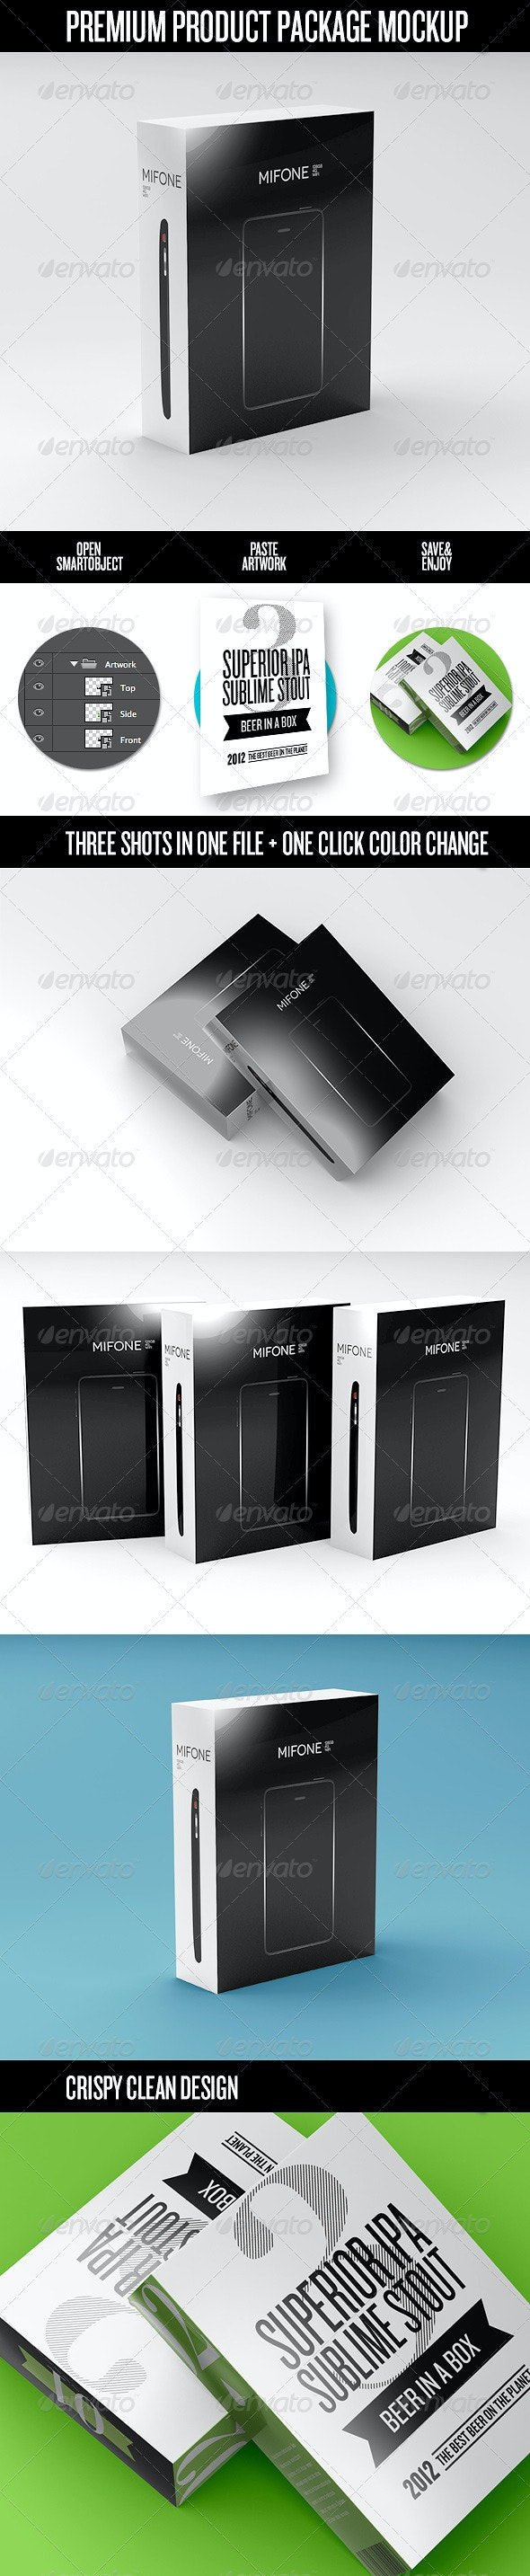 Premium Product Box / Package Mock-Up - Miscellaneous Packaging